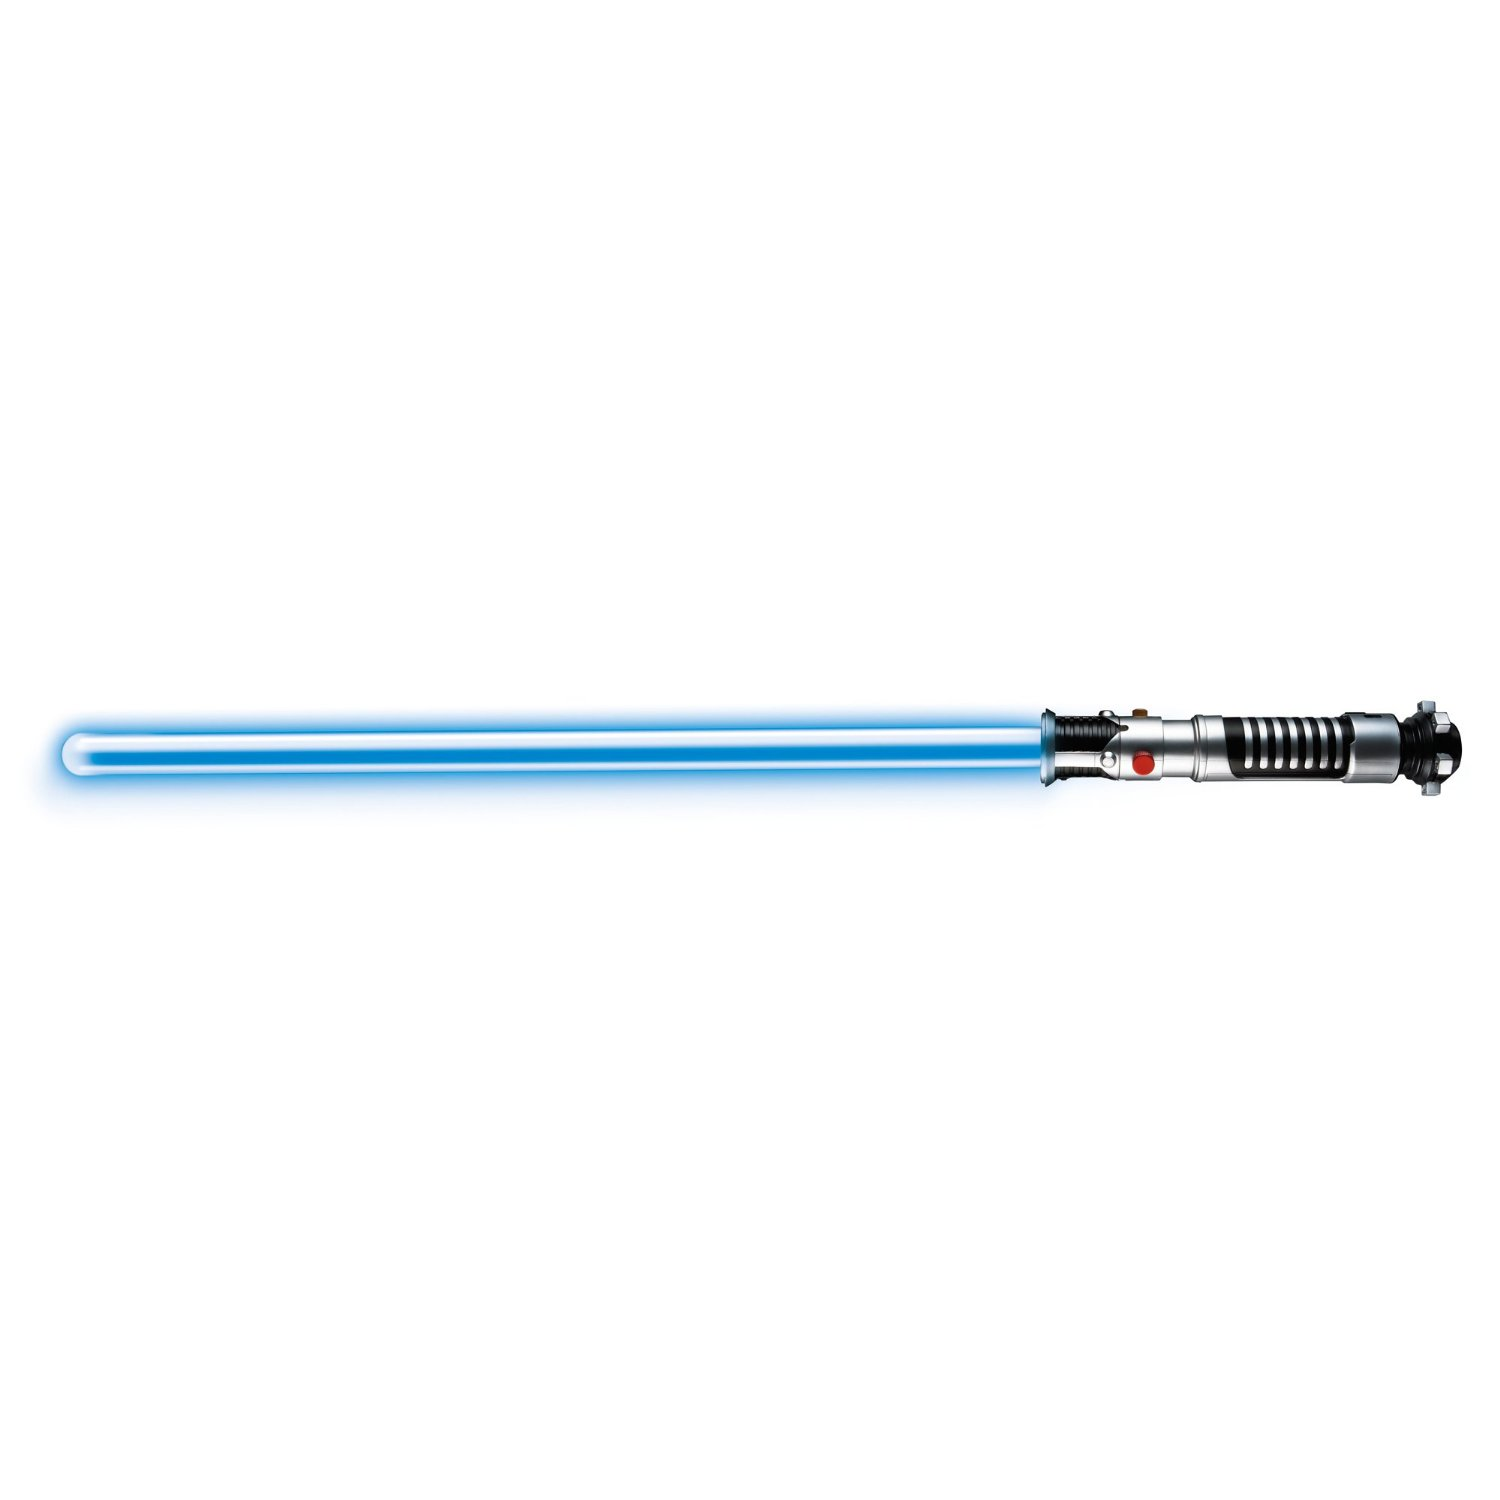 Free lightsaber cliparts download. Starwars clipart sword